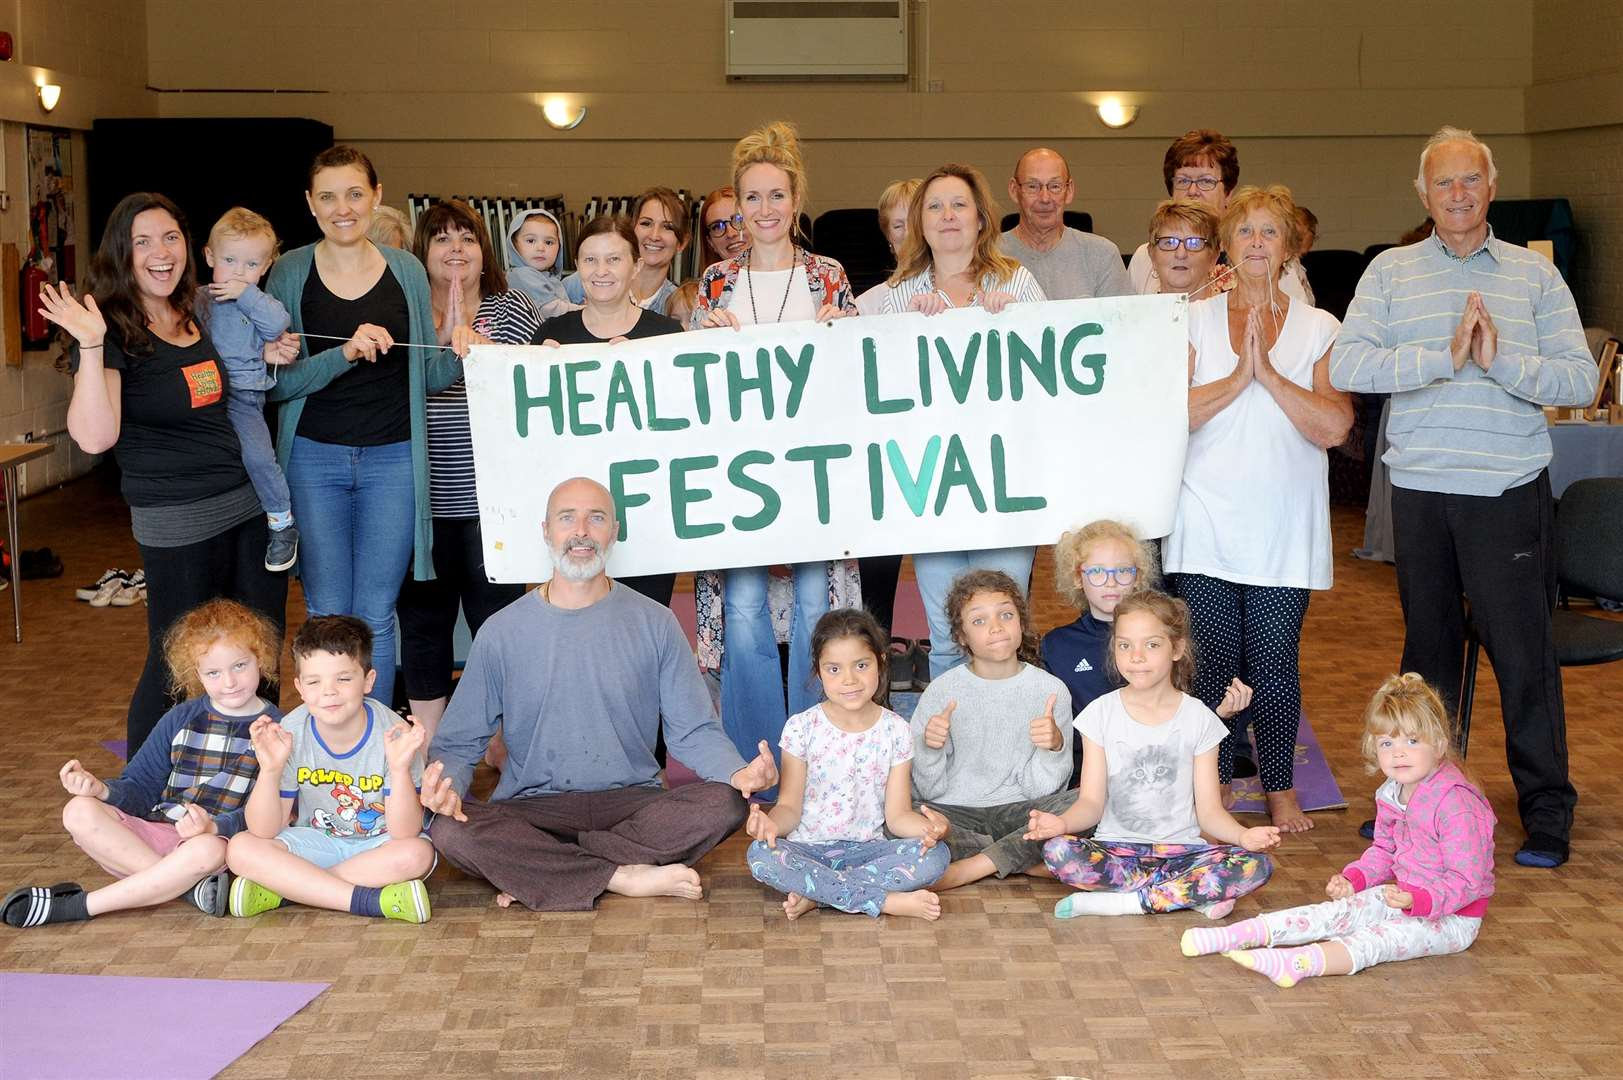 The Healthy Living Festival in Kedington also acted as the launch of a new initiative called This Community Can, which focuses on wellbeing and includes a 12 week yoga course. Picture by Mecha Morton.